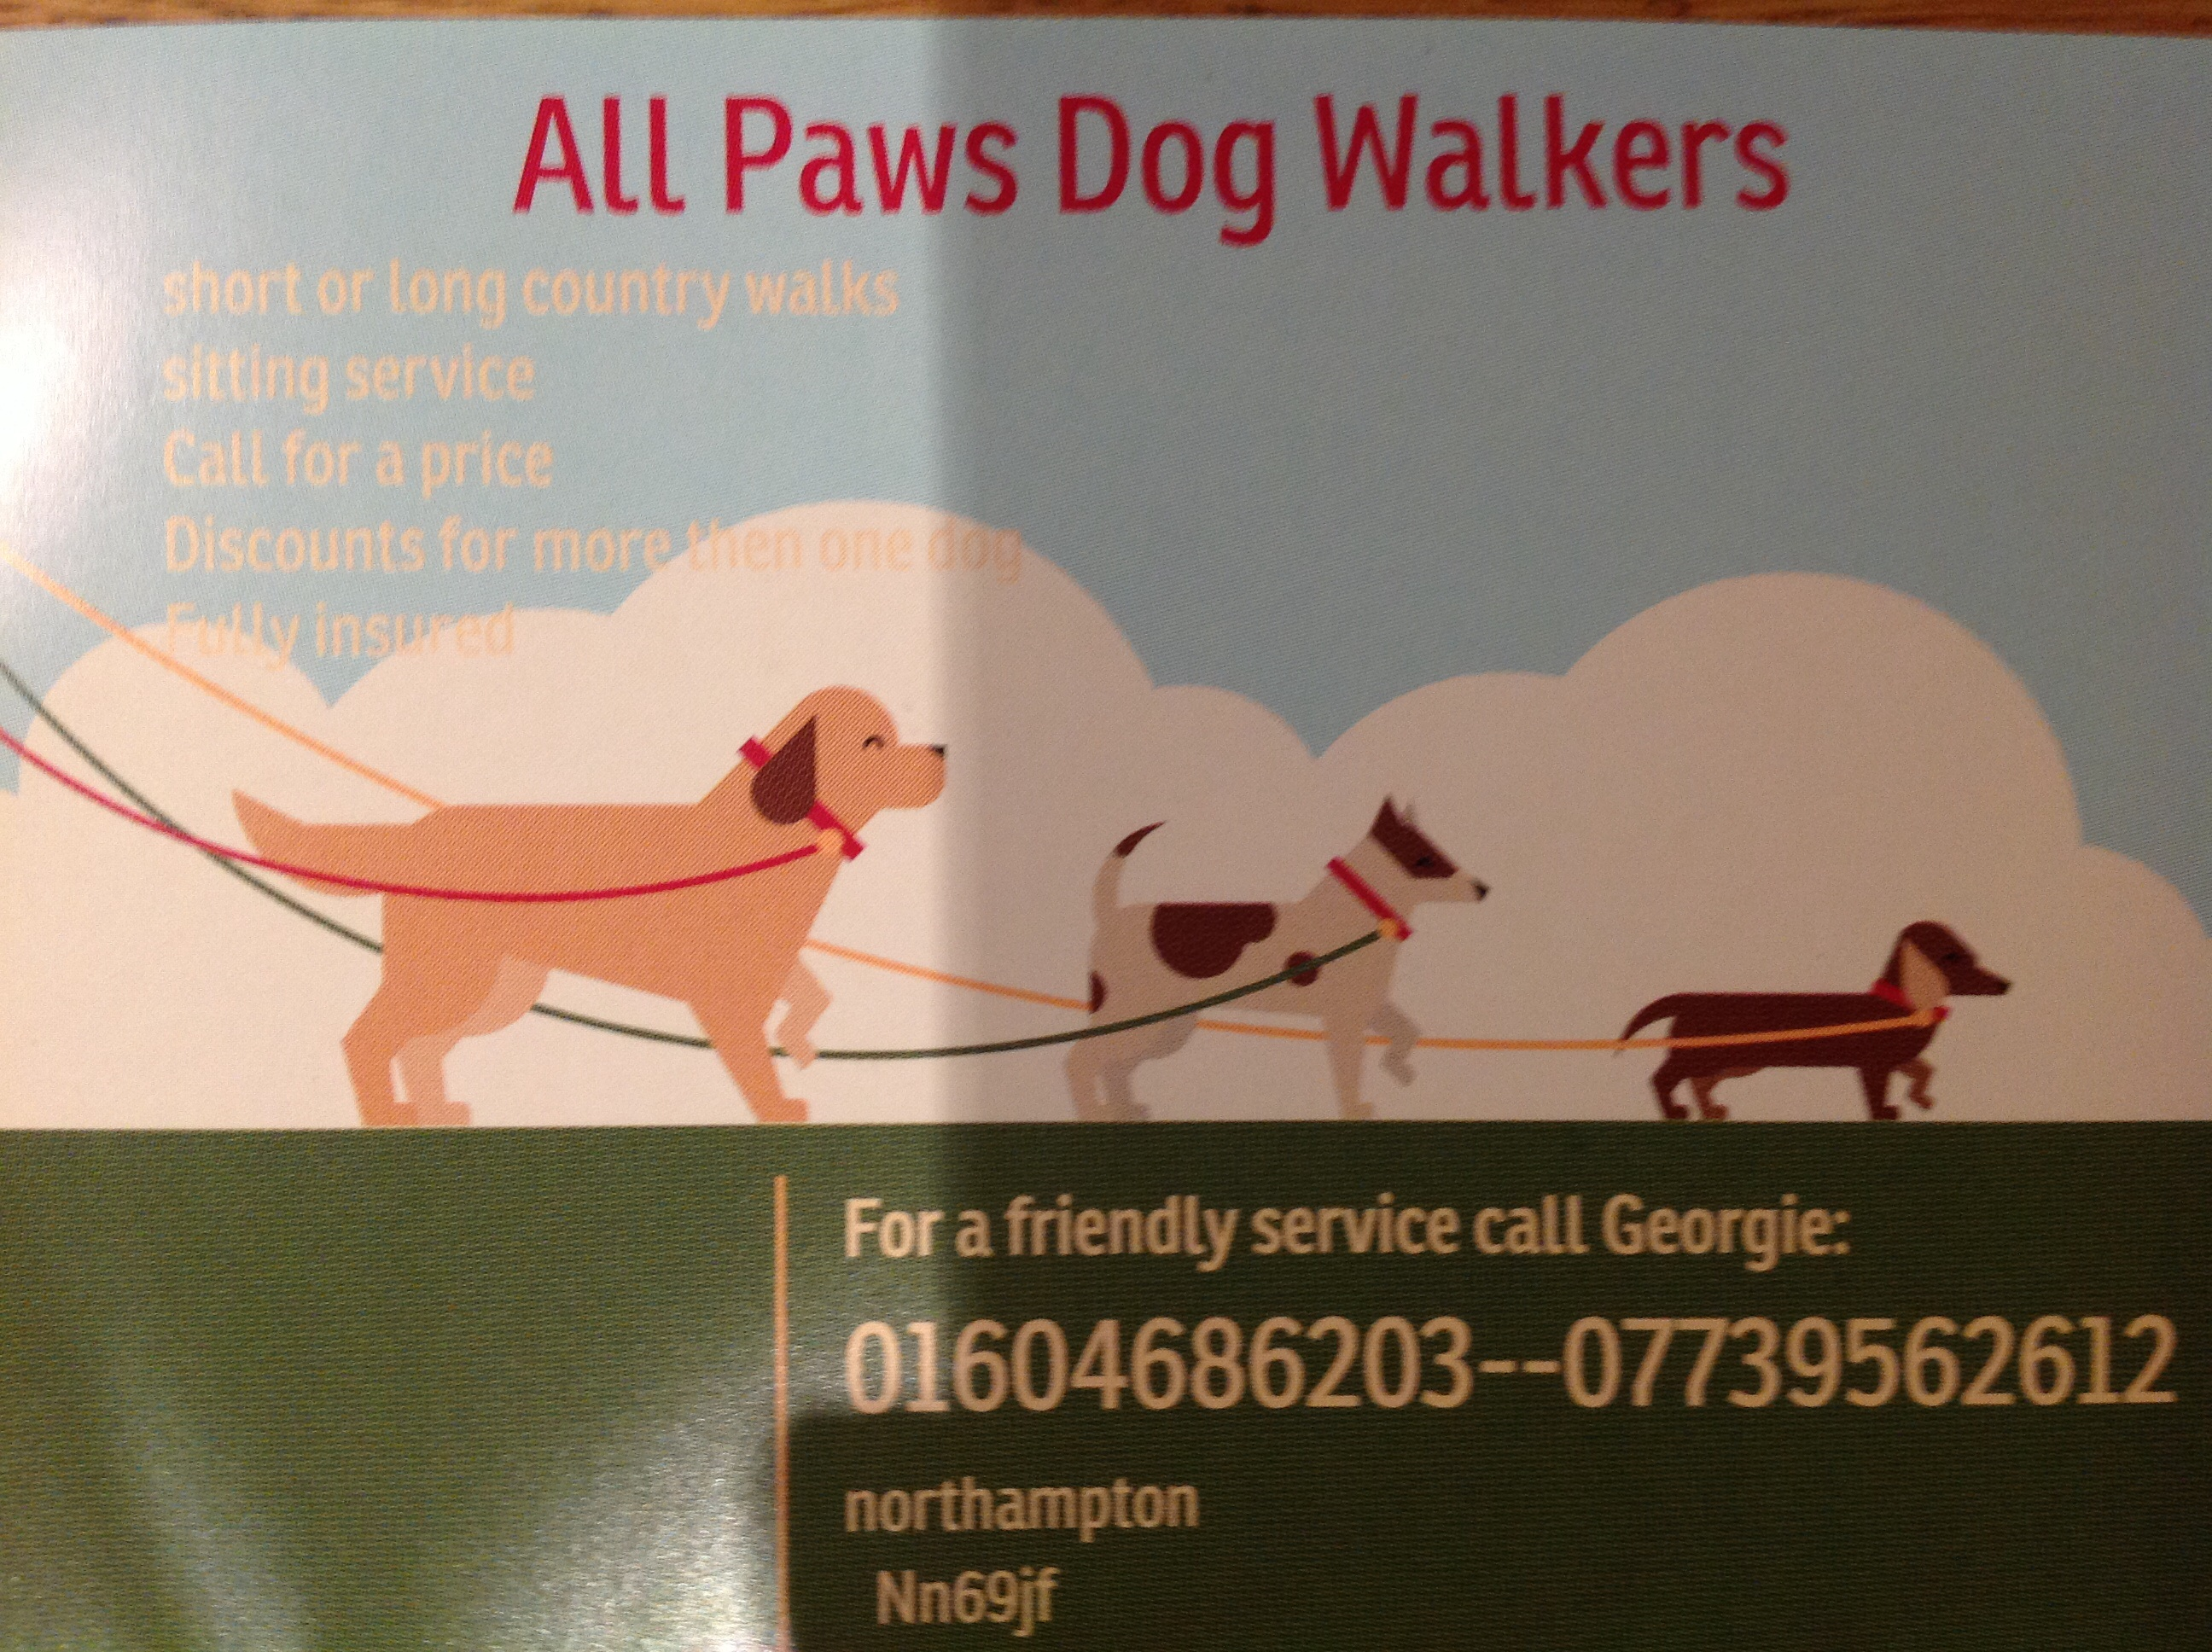 All paws dog walkers and home boarding